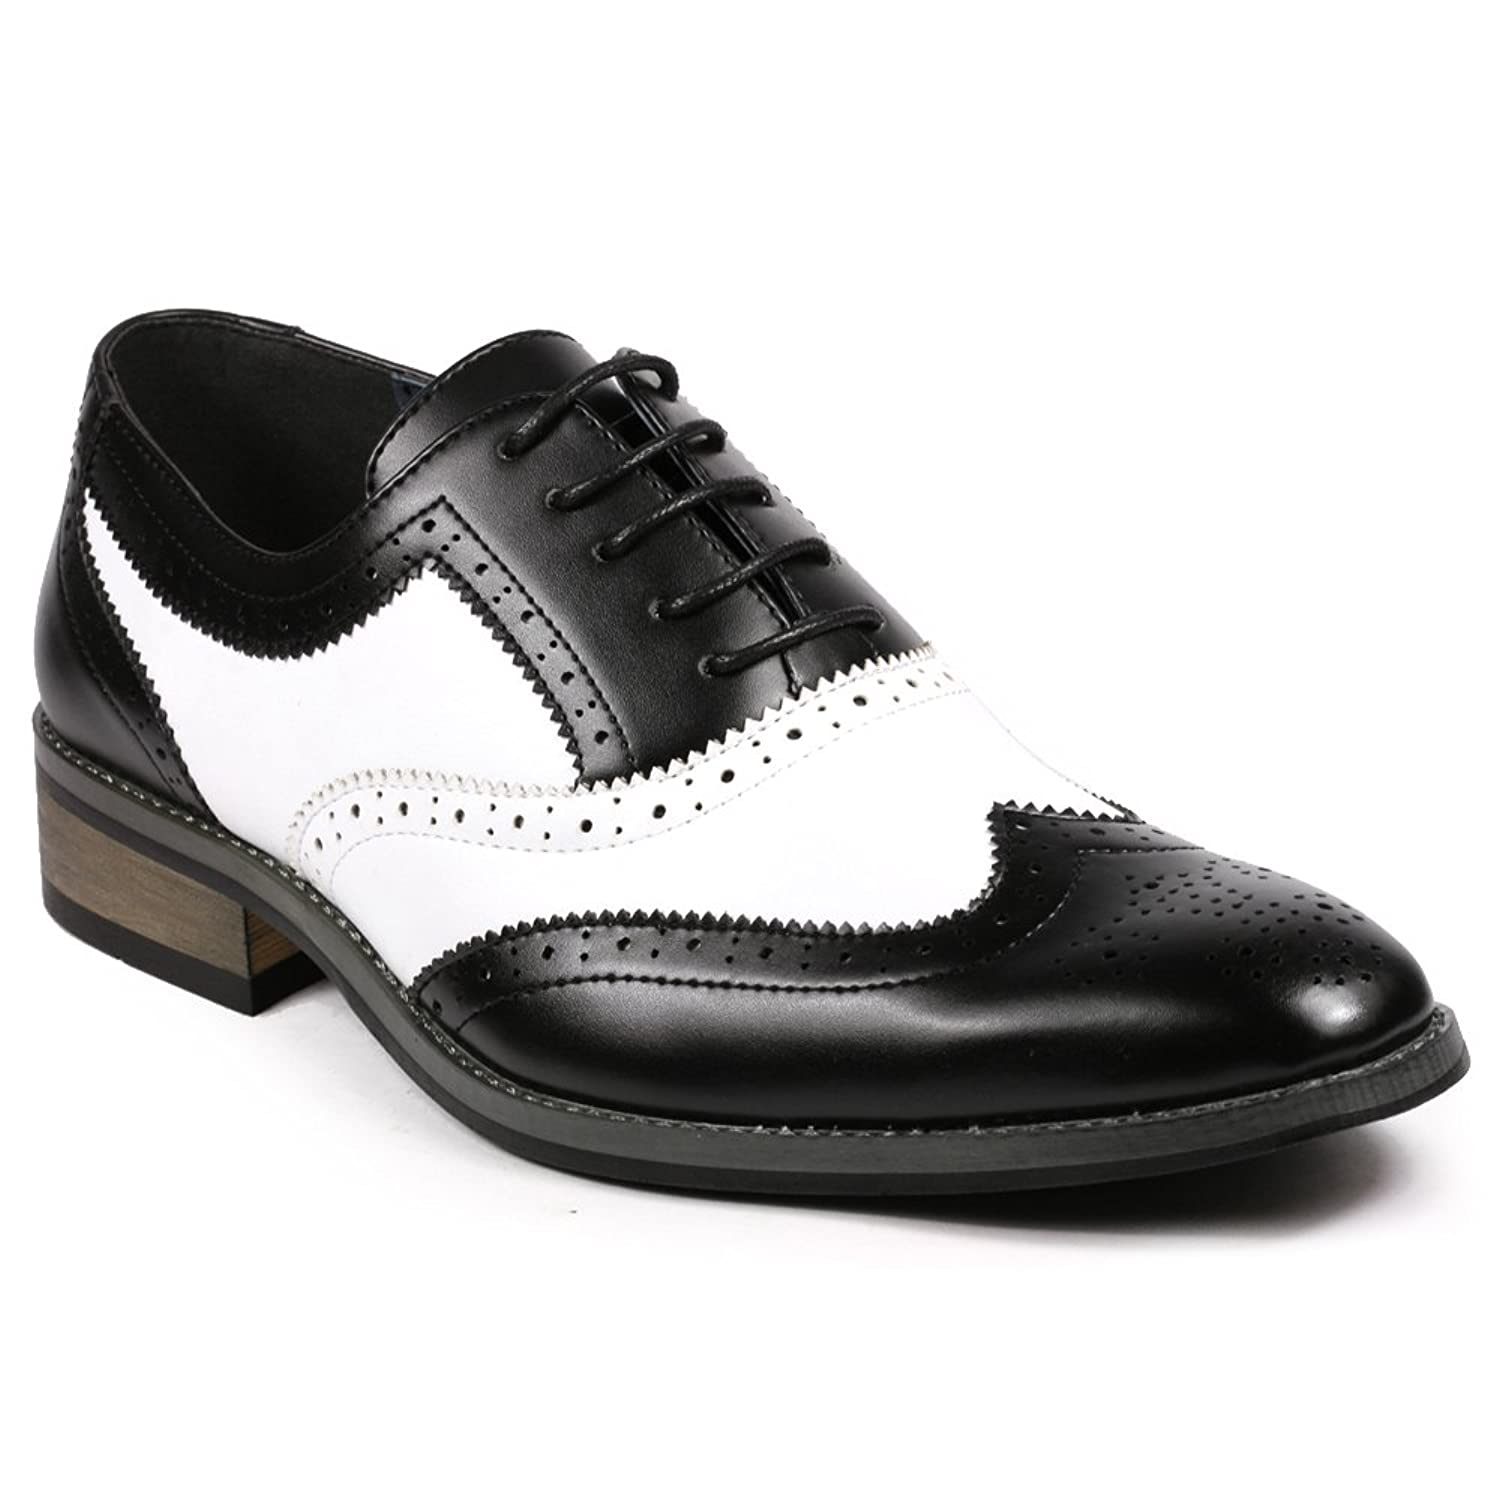 Old Fashioned Formal Shoes